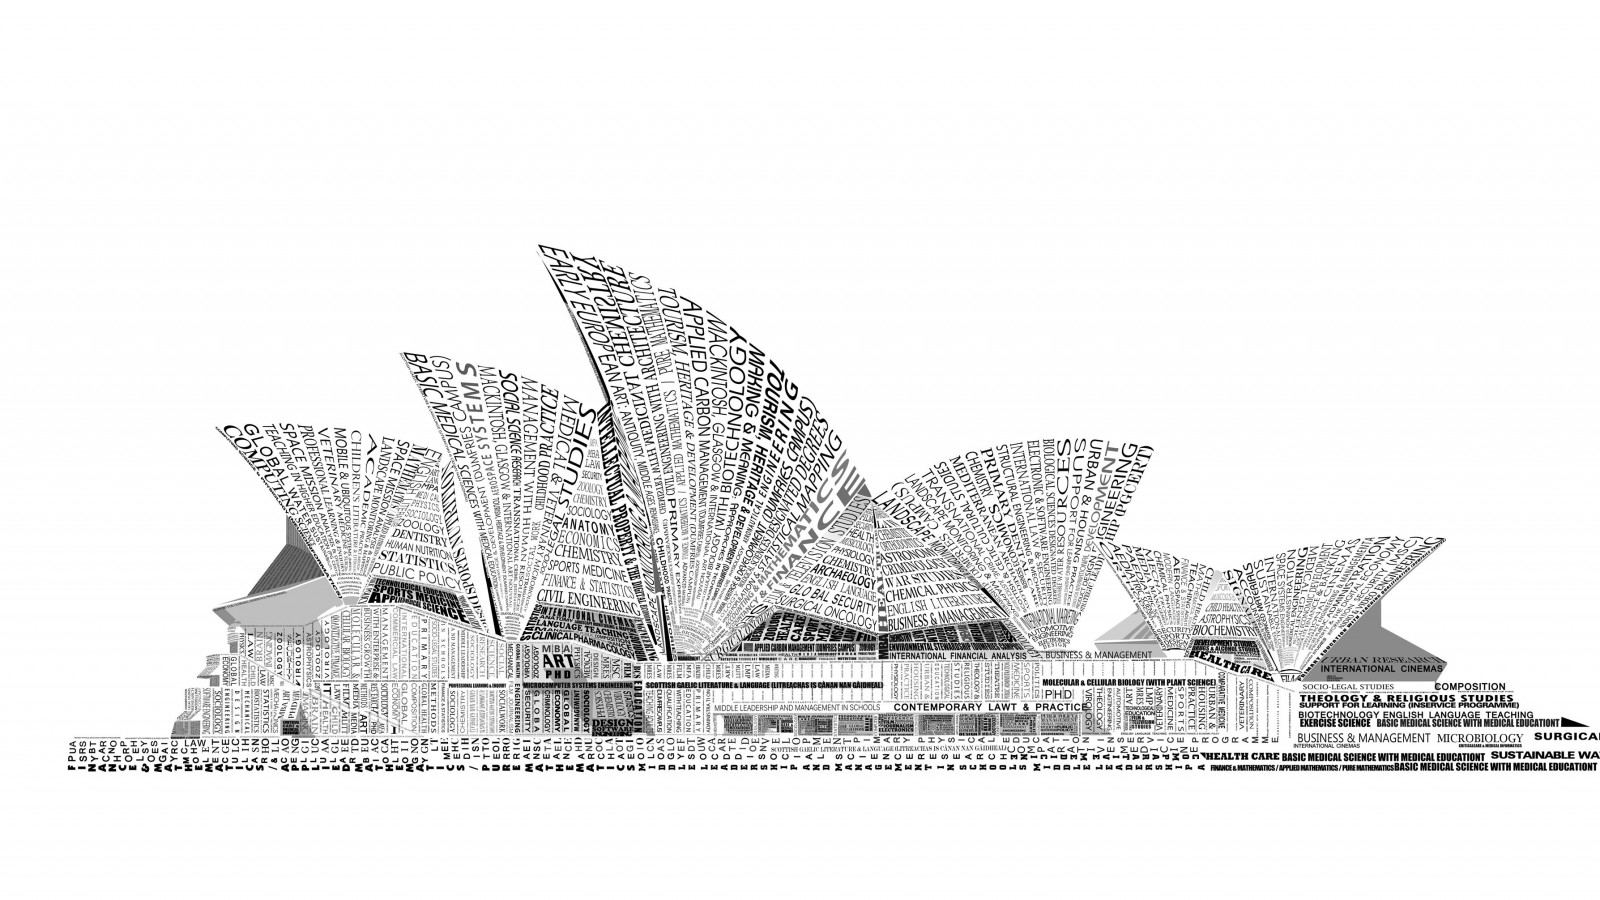 Opera House Sydney Typography Wallpaper for Desktop 1600x900